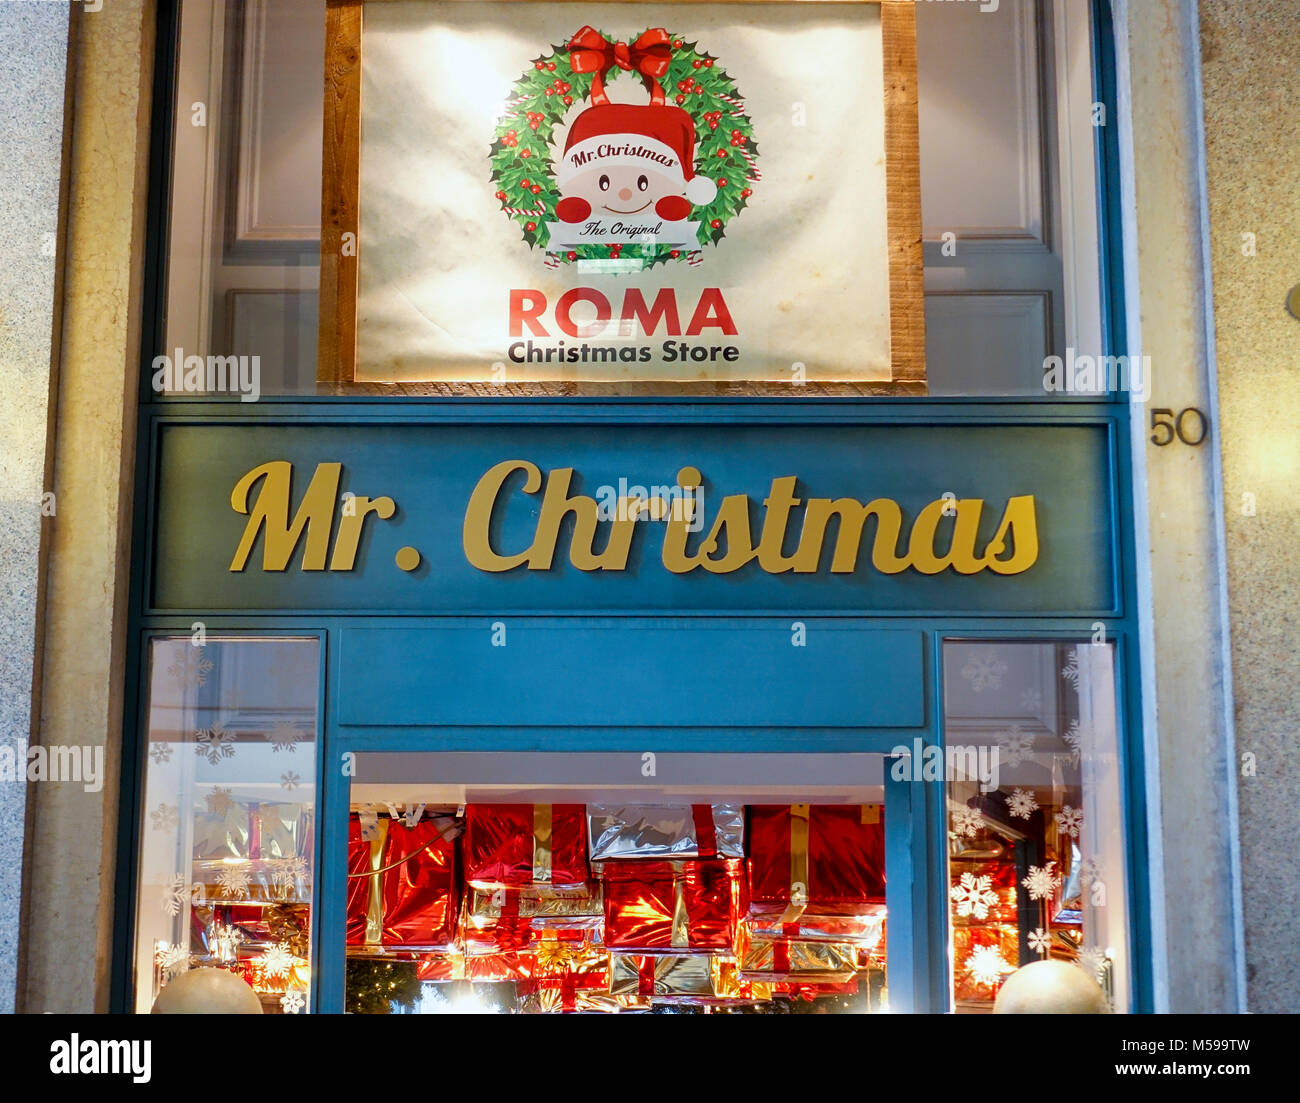 Mr Christmas an all year round Christmas outlet in Rome Italy - Stock Image